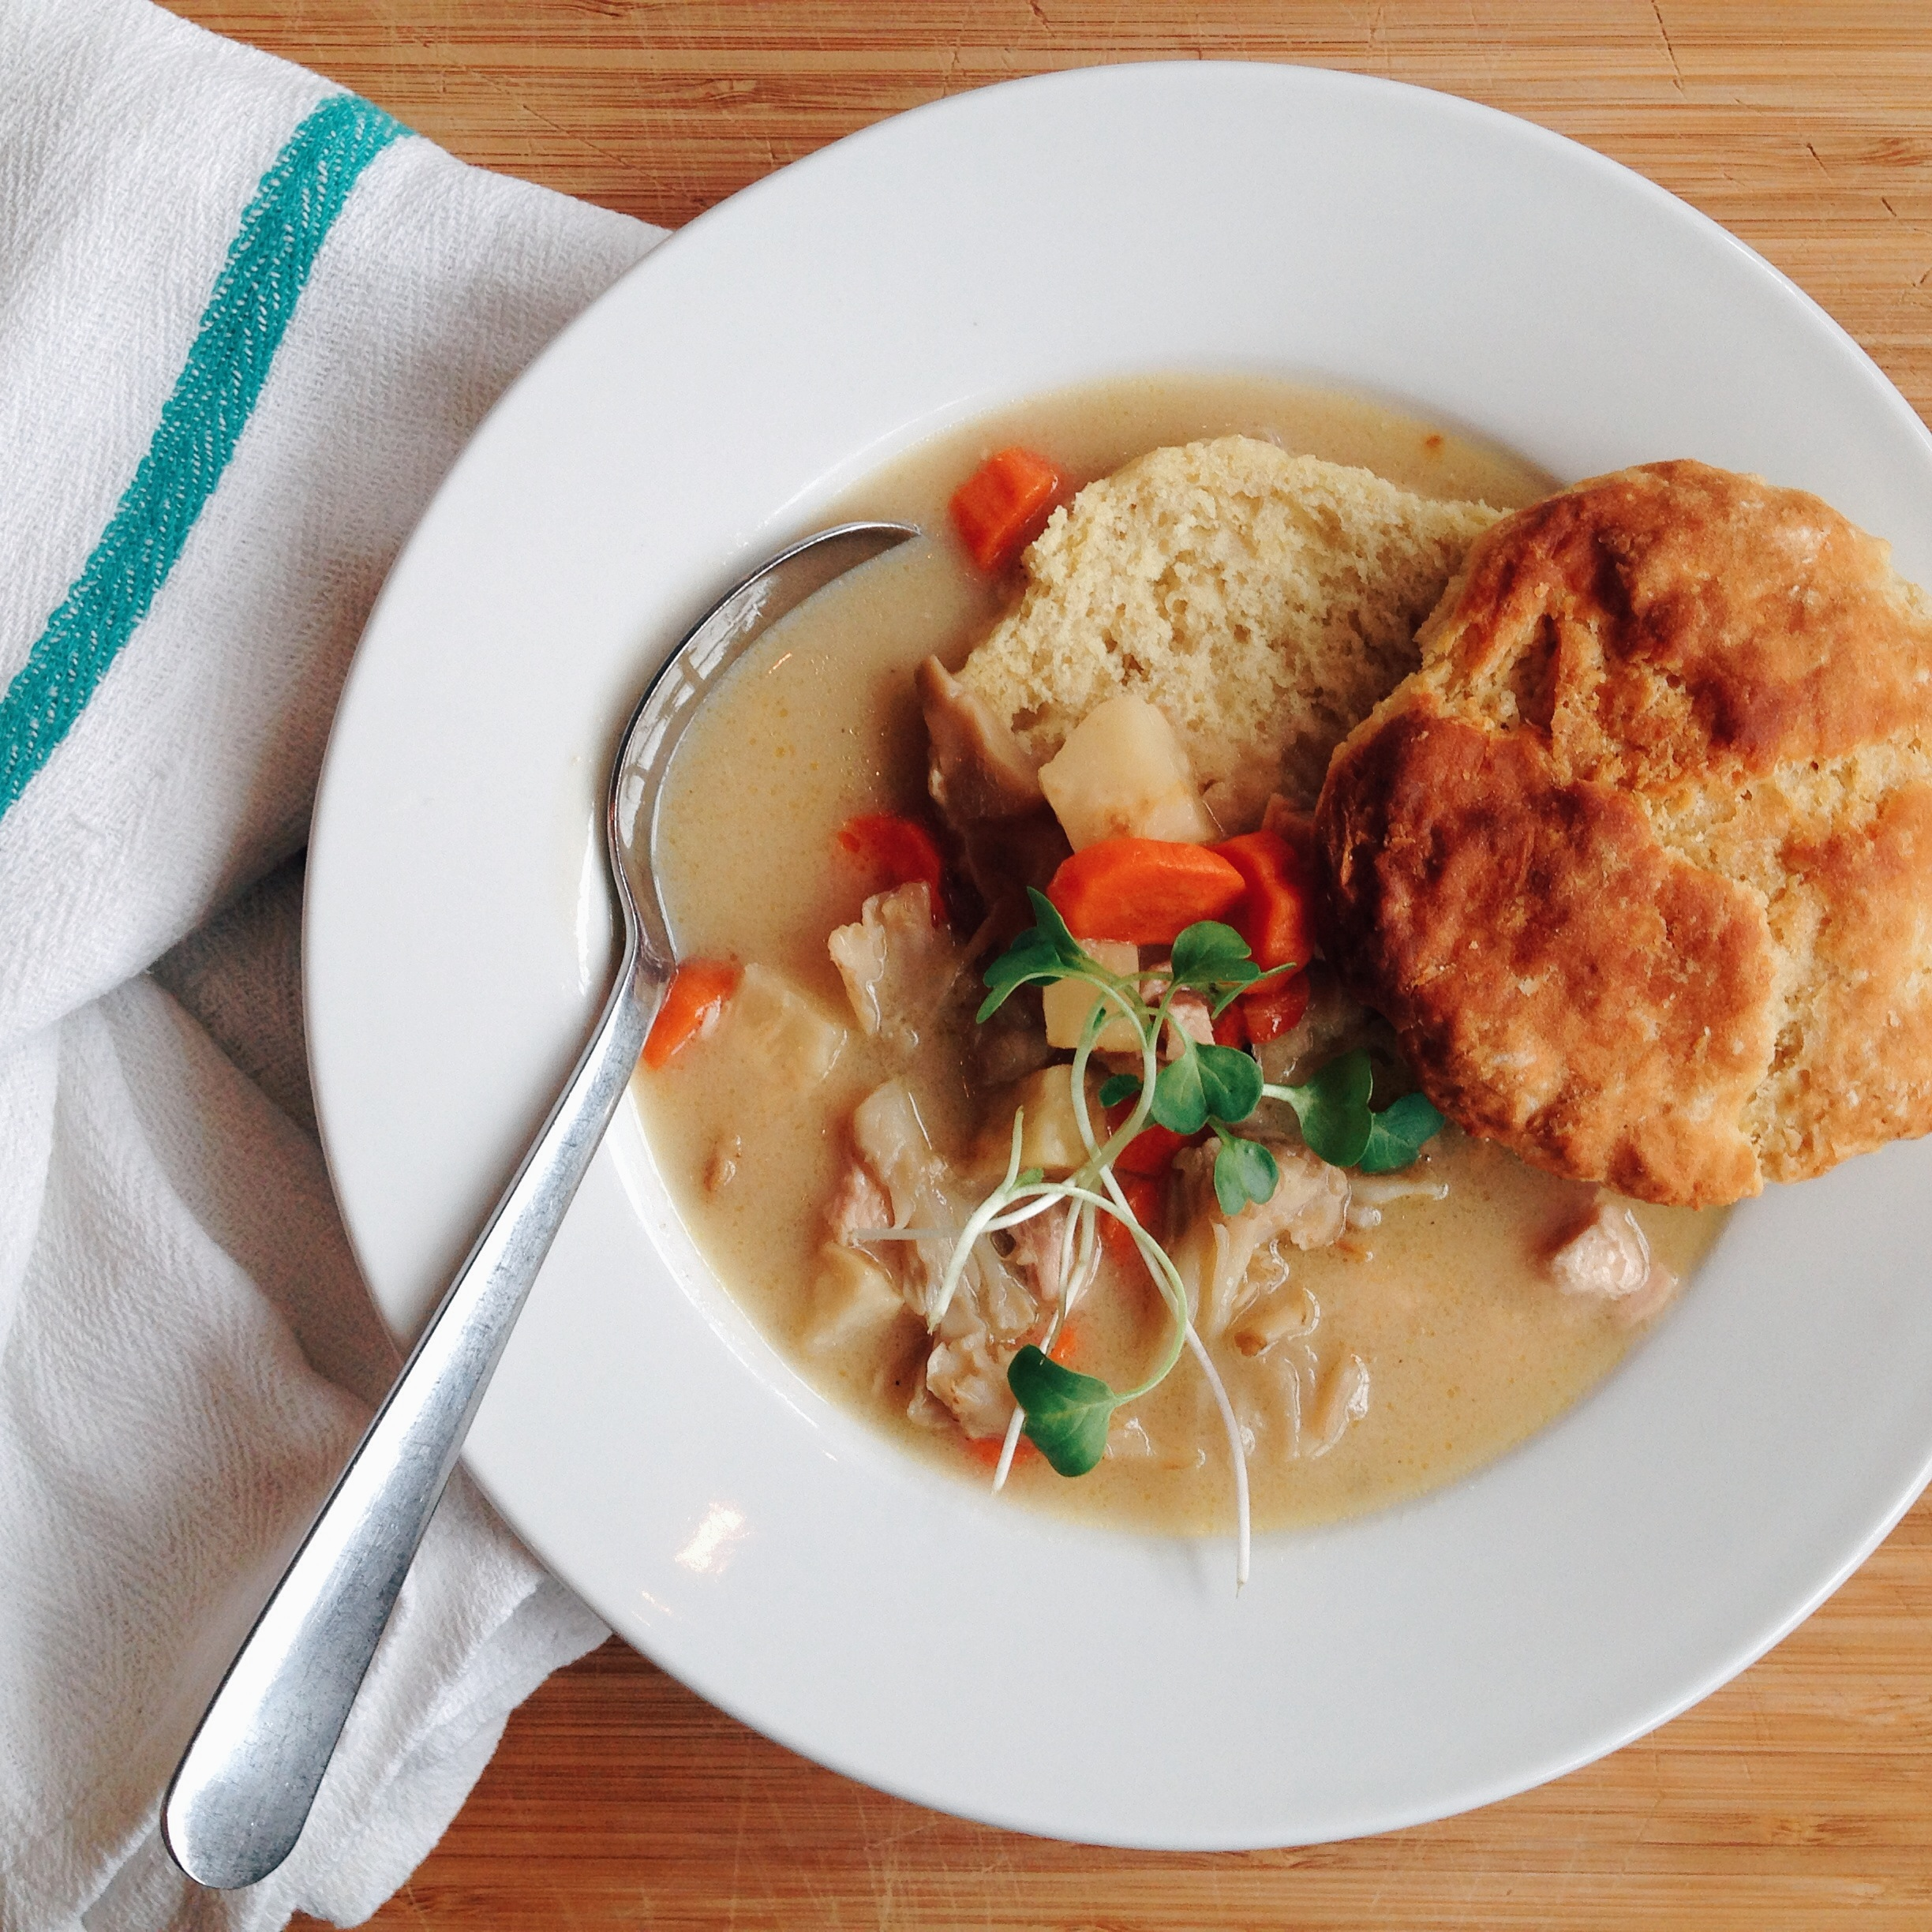 Chicken pot pie with celery root and rosemary for Good Eggs lunch. Photo by Annie Svigals